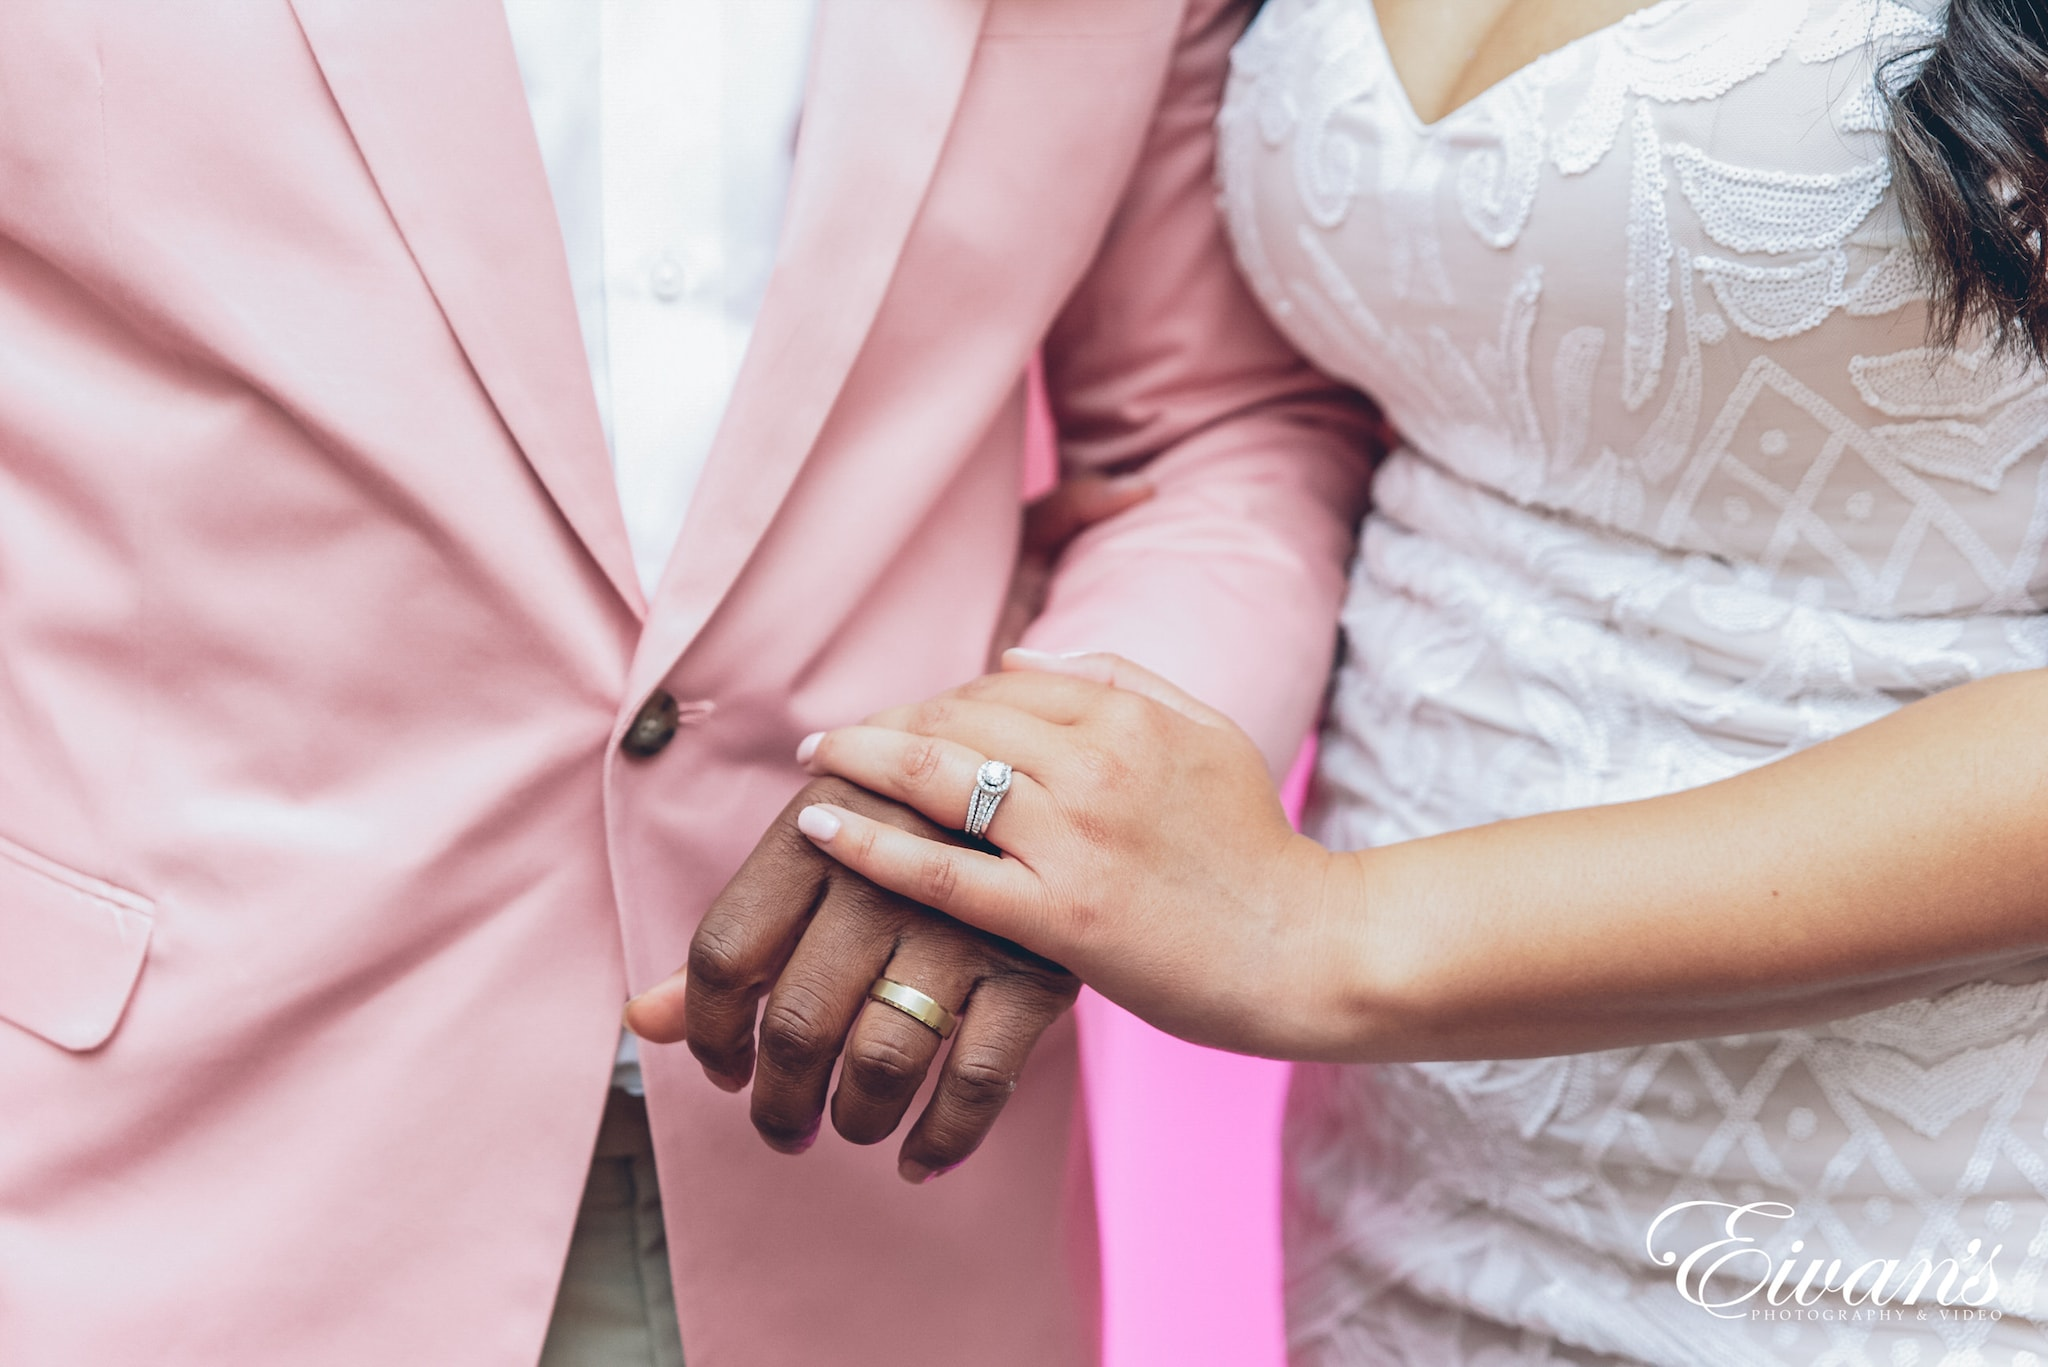 man and woman holding hands and showing off rings